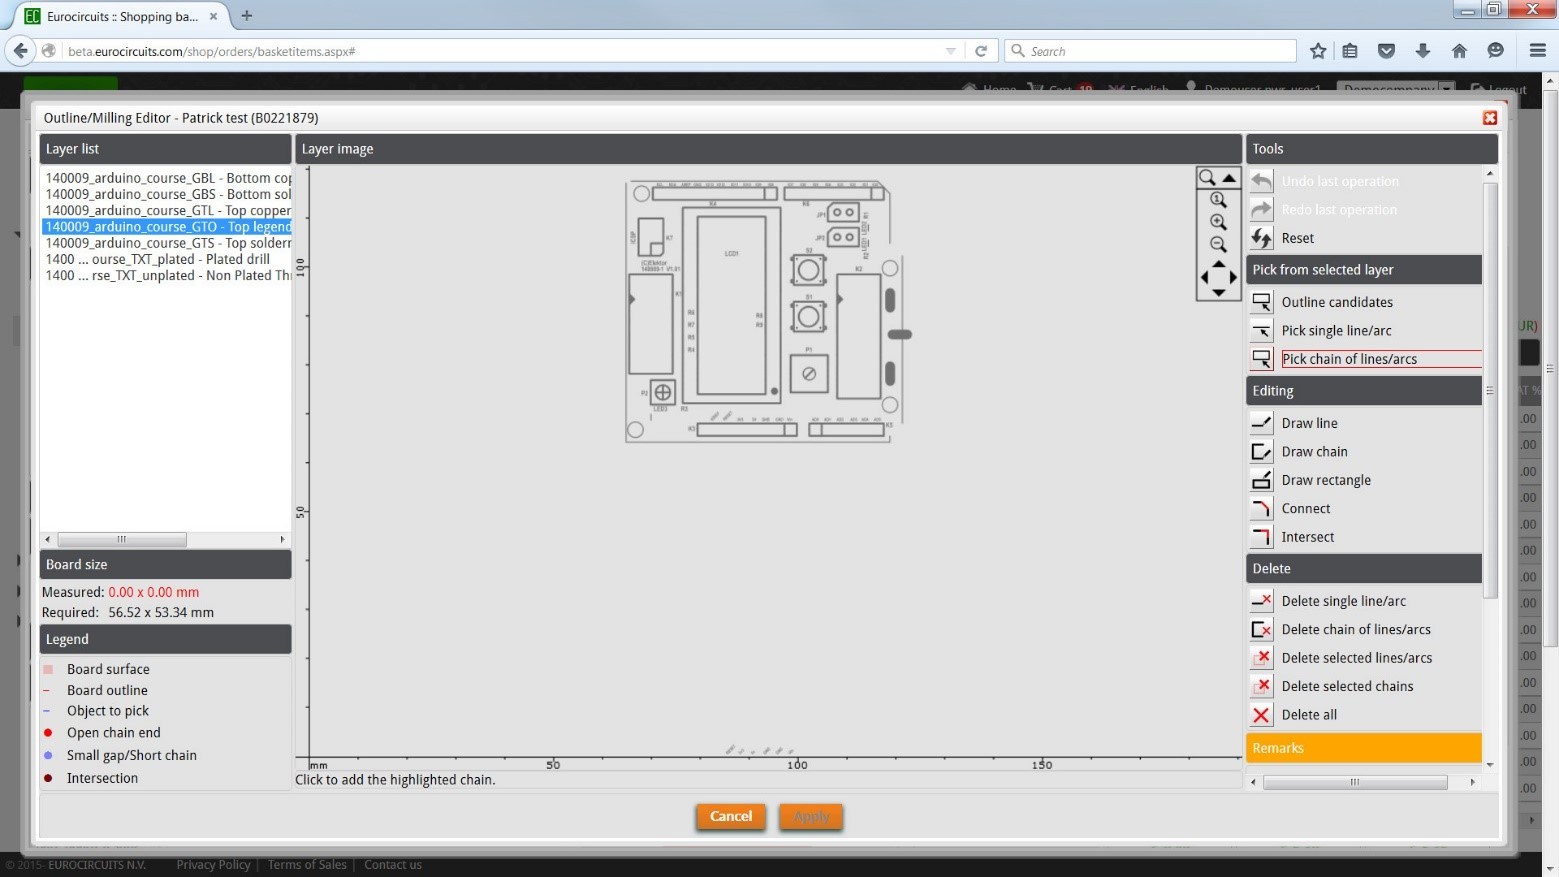 PCB Solver – Outline/Milling Editor – Eurocircuits